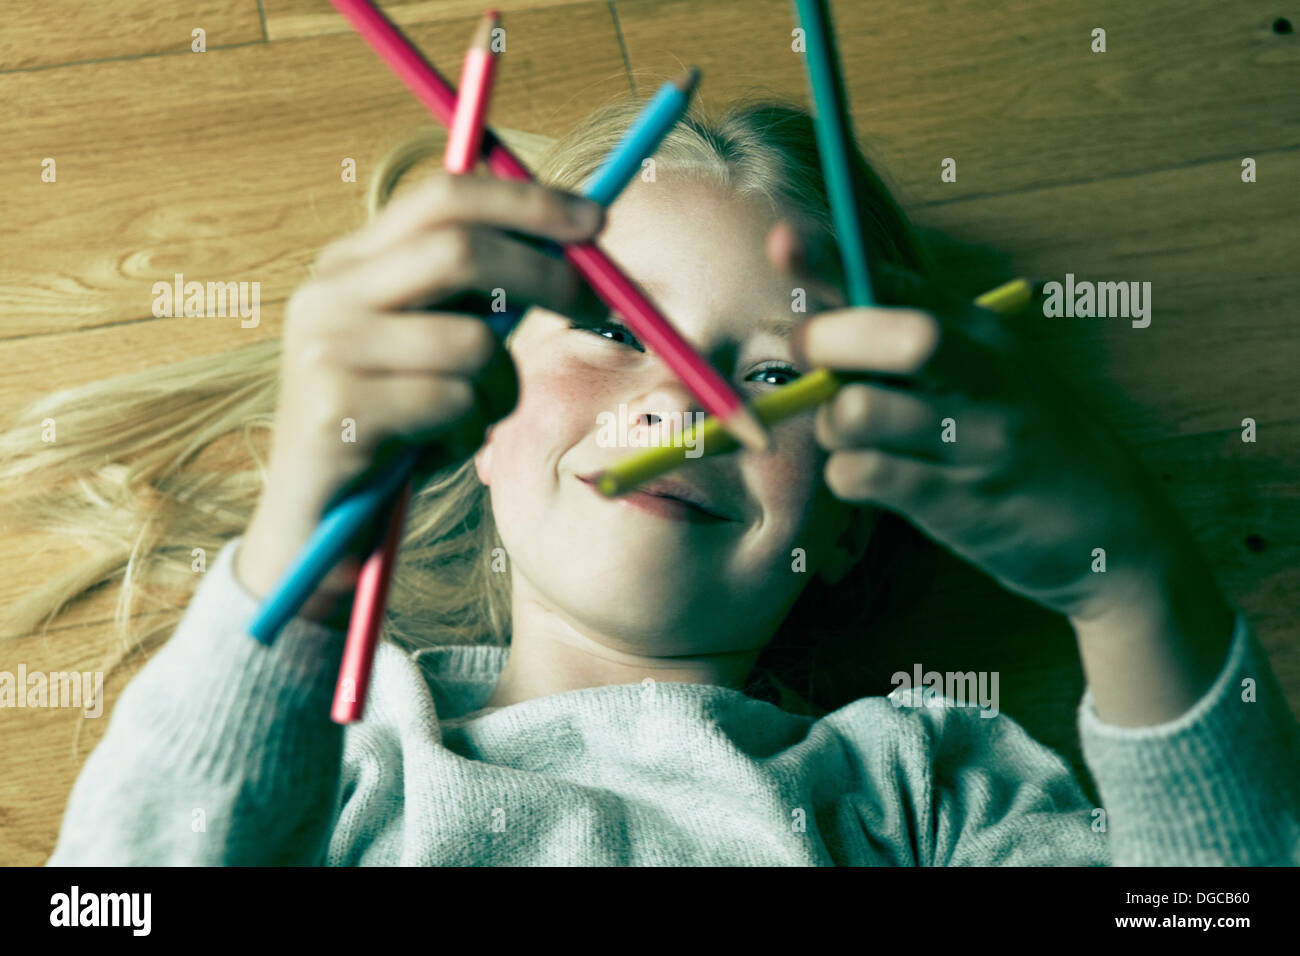 Young girl lying on floor looking at coloured pencils - Stock Image